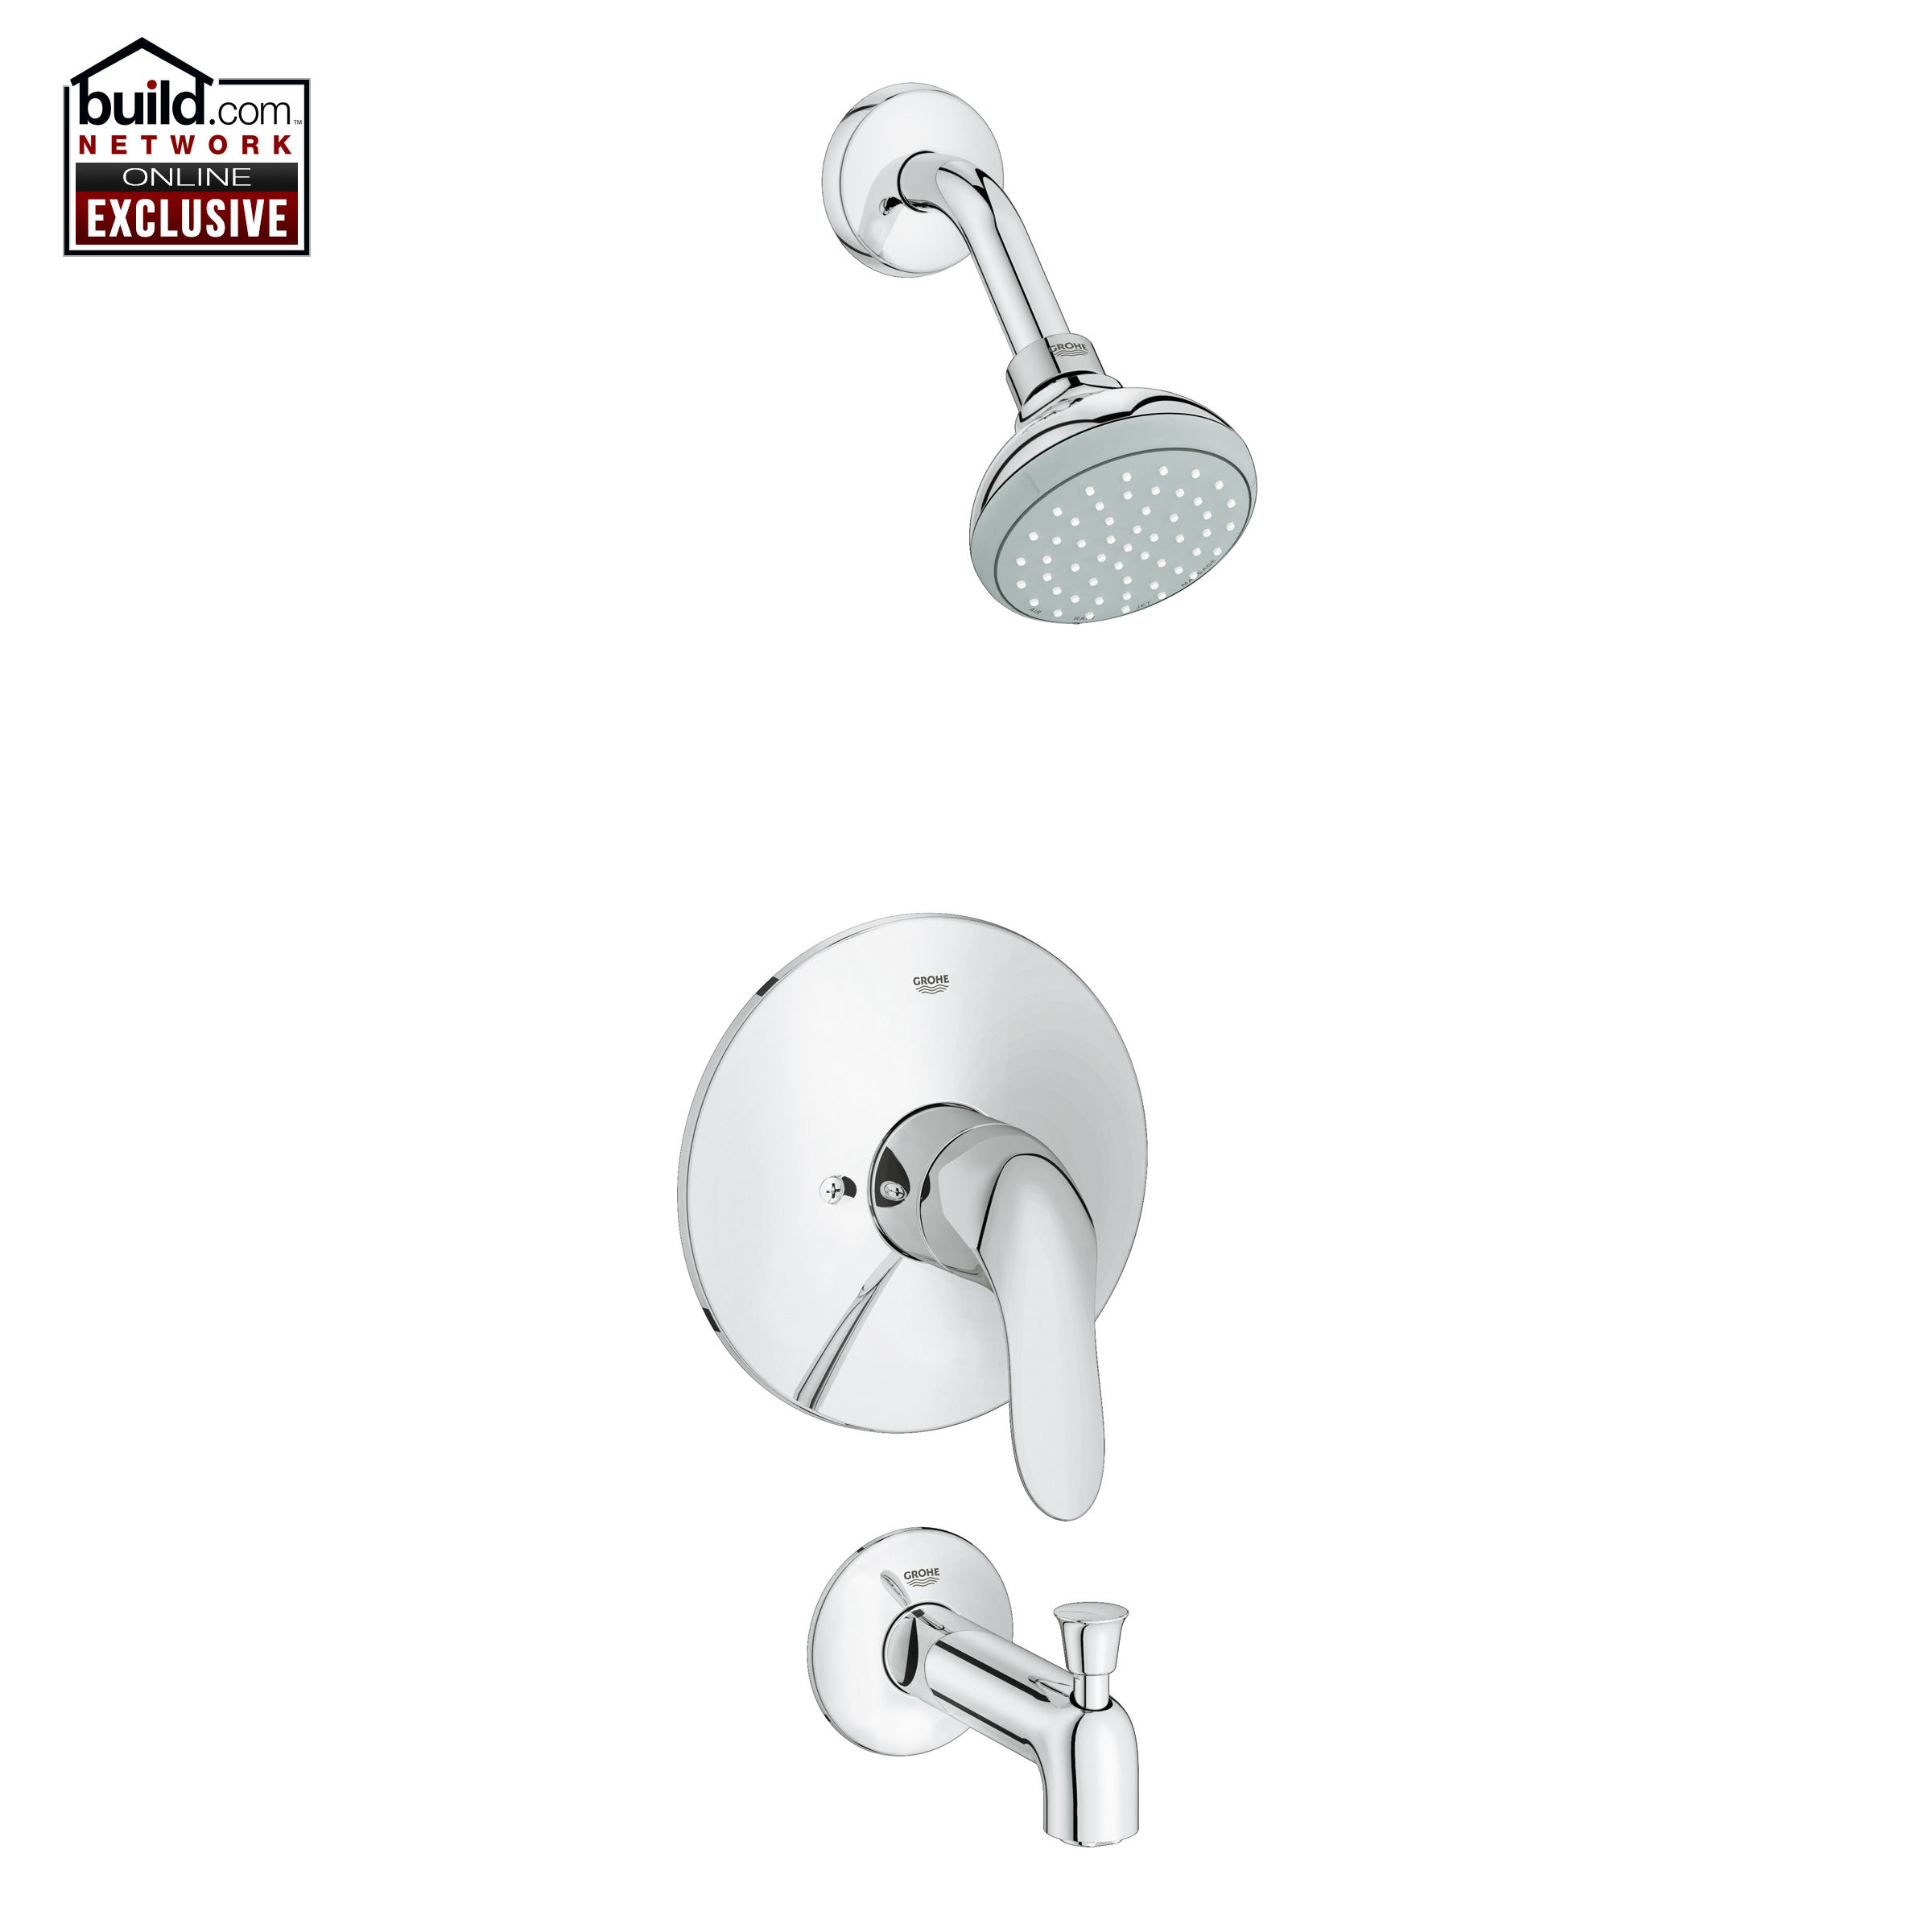 s faucet inflow inflowcomponent watersense p nickel gloucester global brushed grohe shower bathtub res technicalissues content